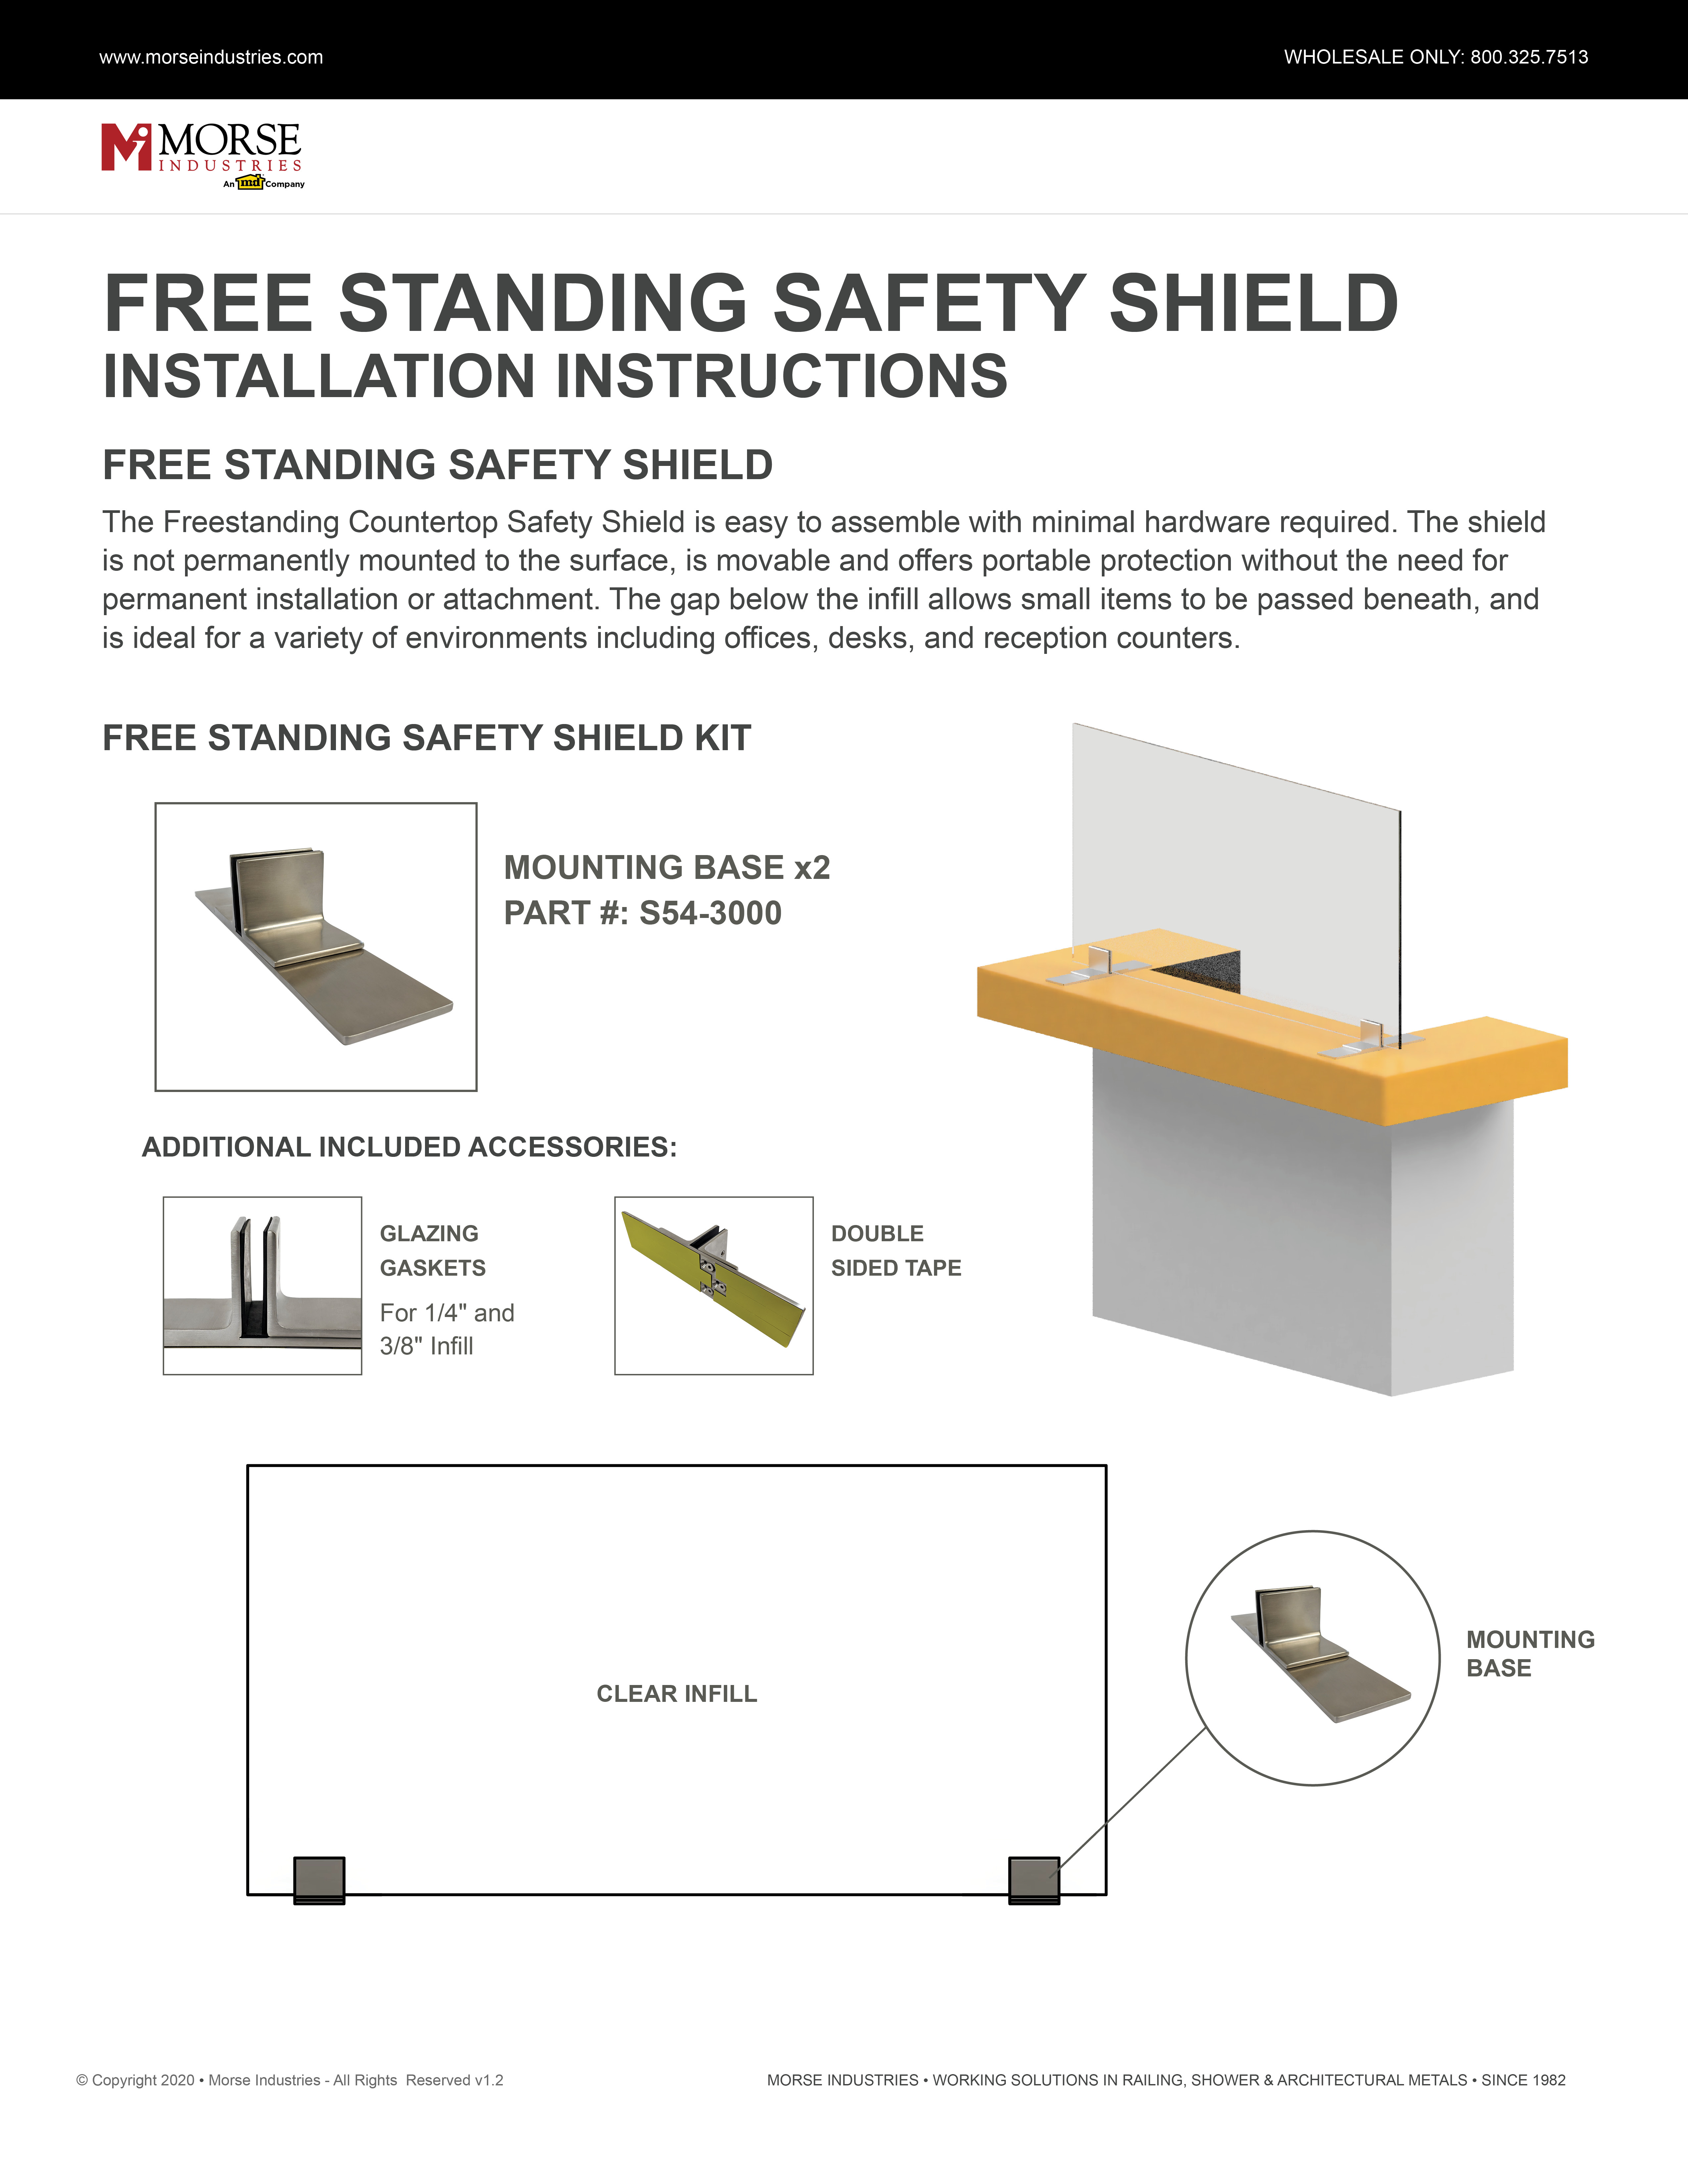 Safety Shield Free Standing Installation Instructions